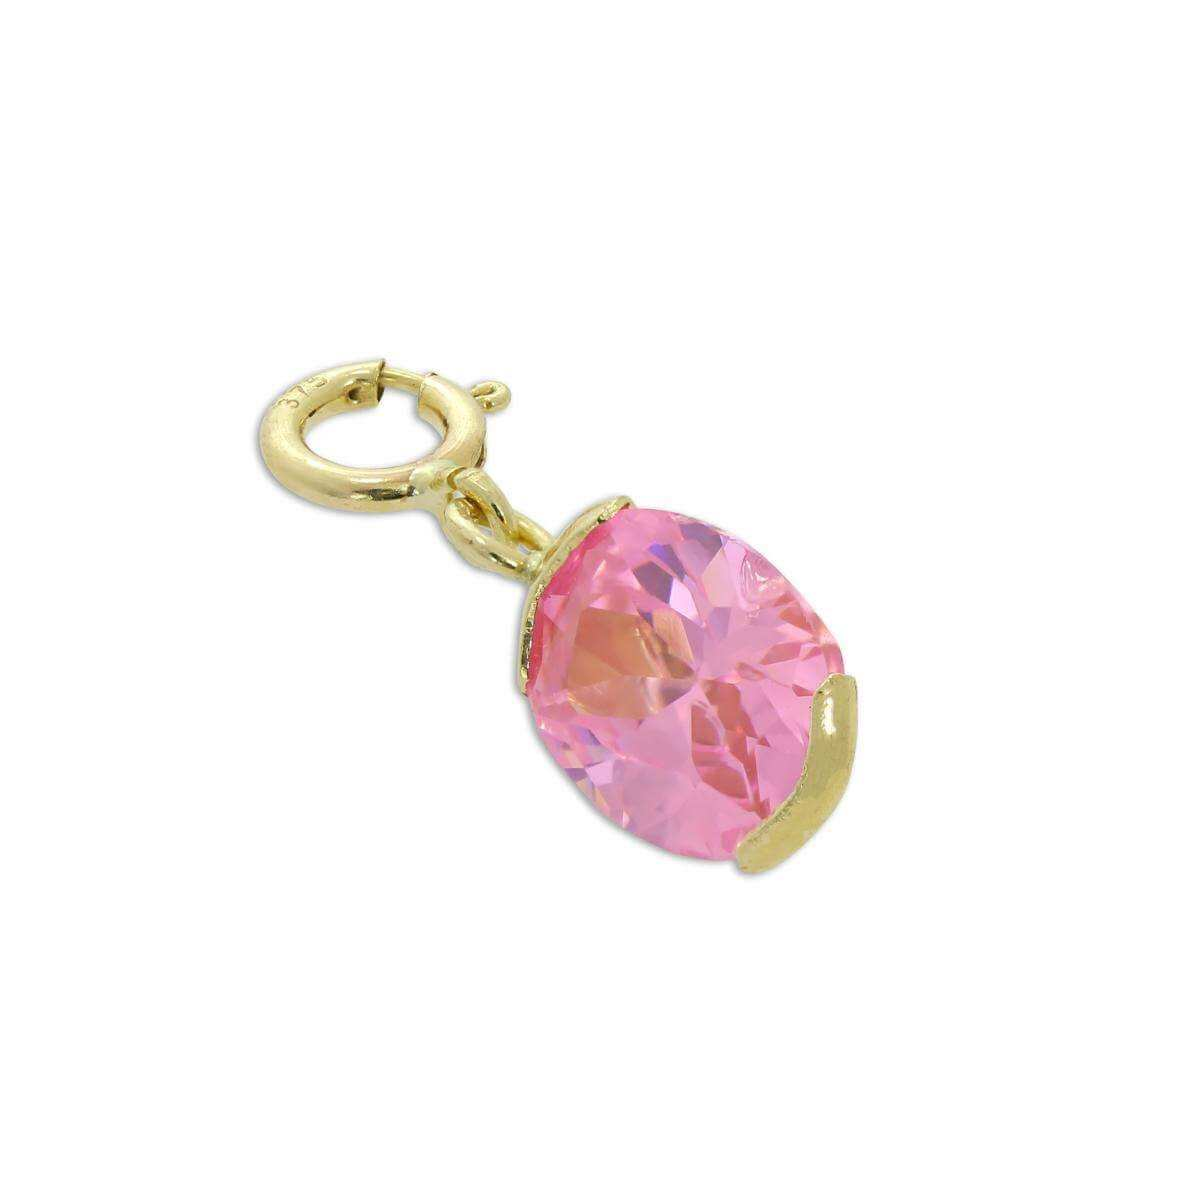 9ct Gold & Pink CZ Crystal Oval Clip on Charm